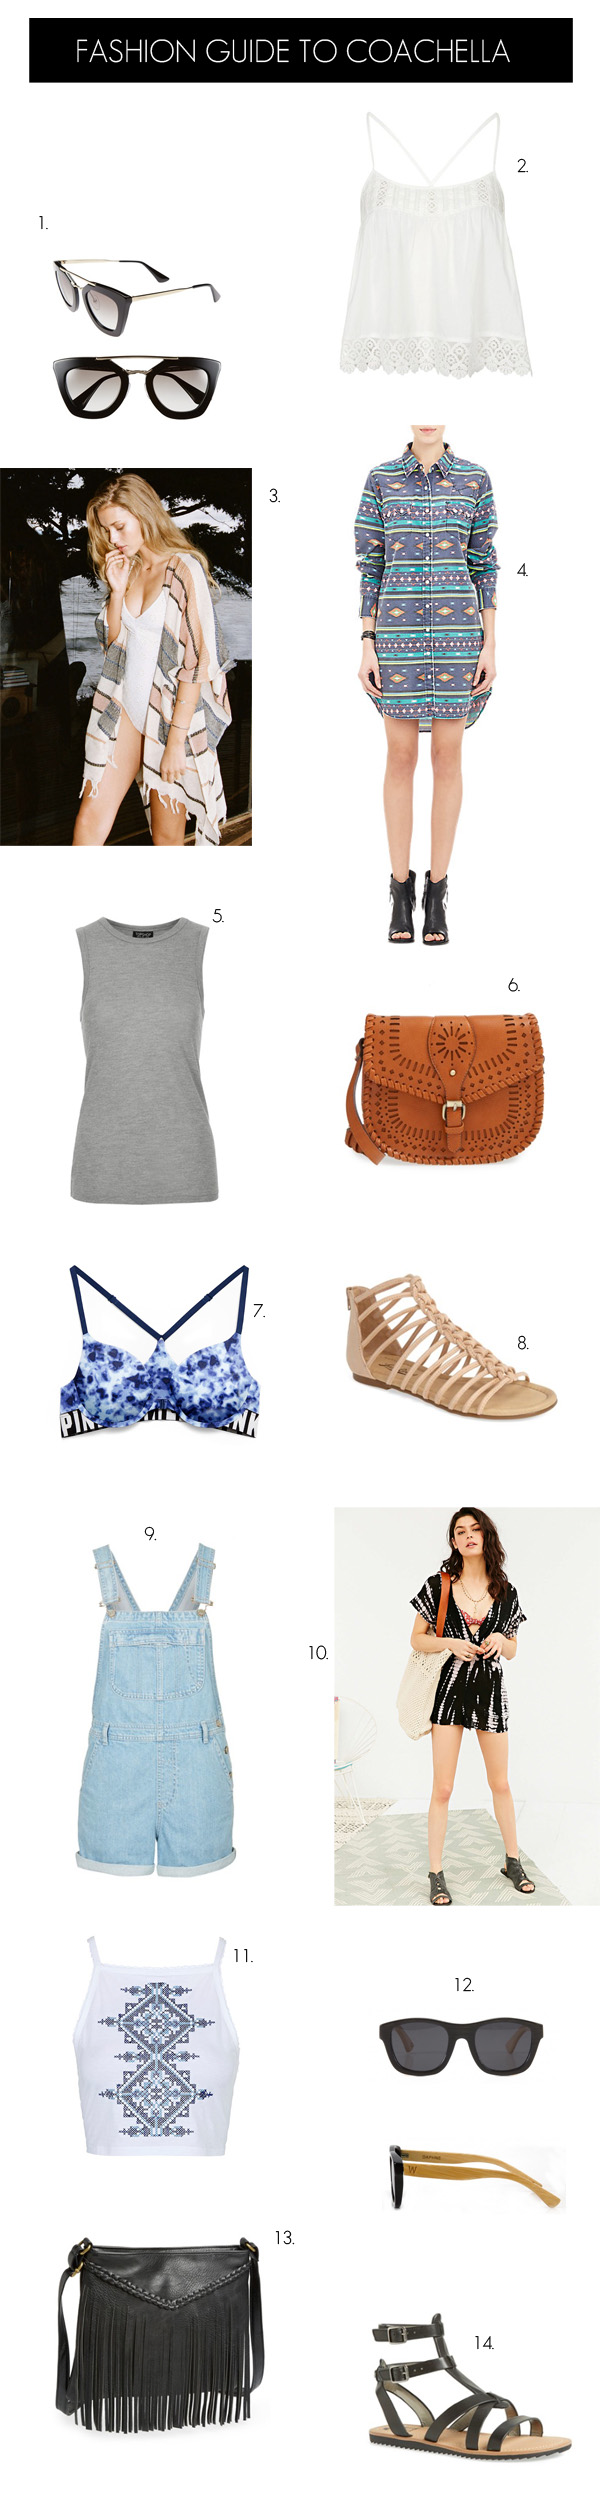 fashion_coachella_what to wear